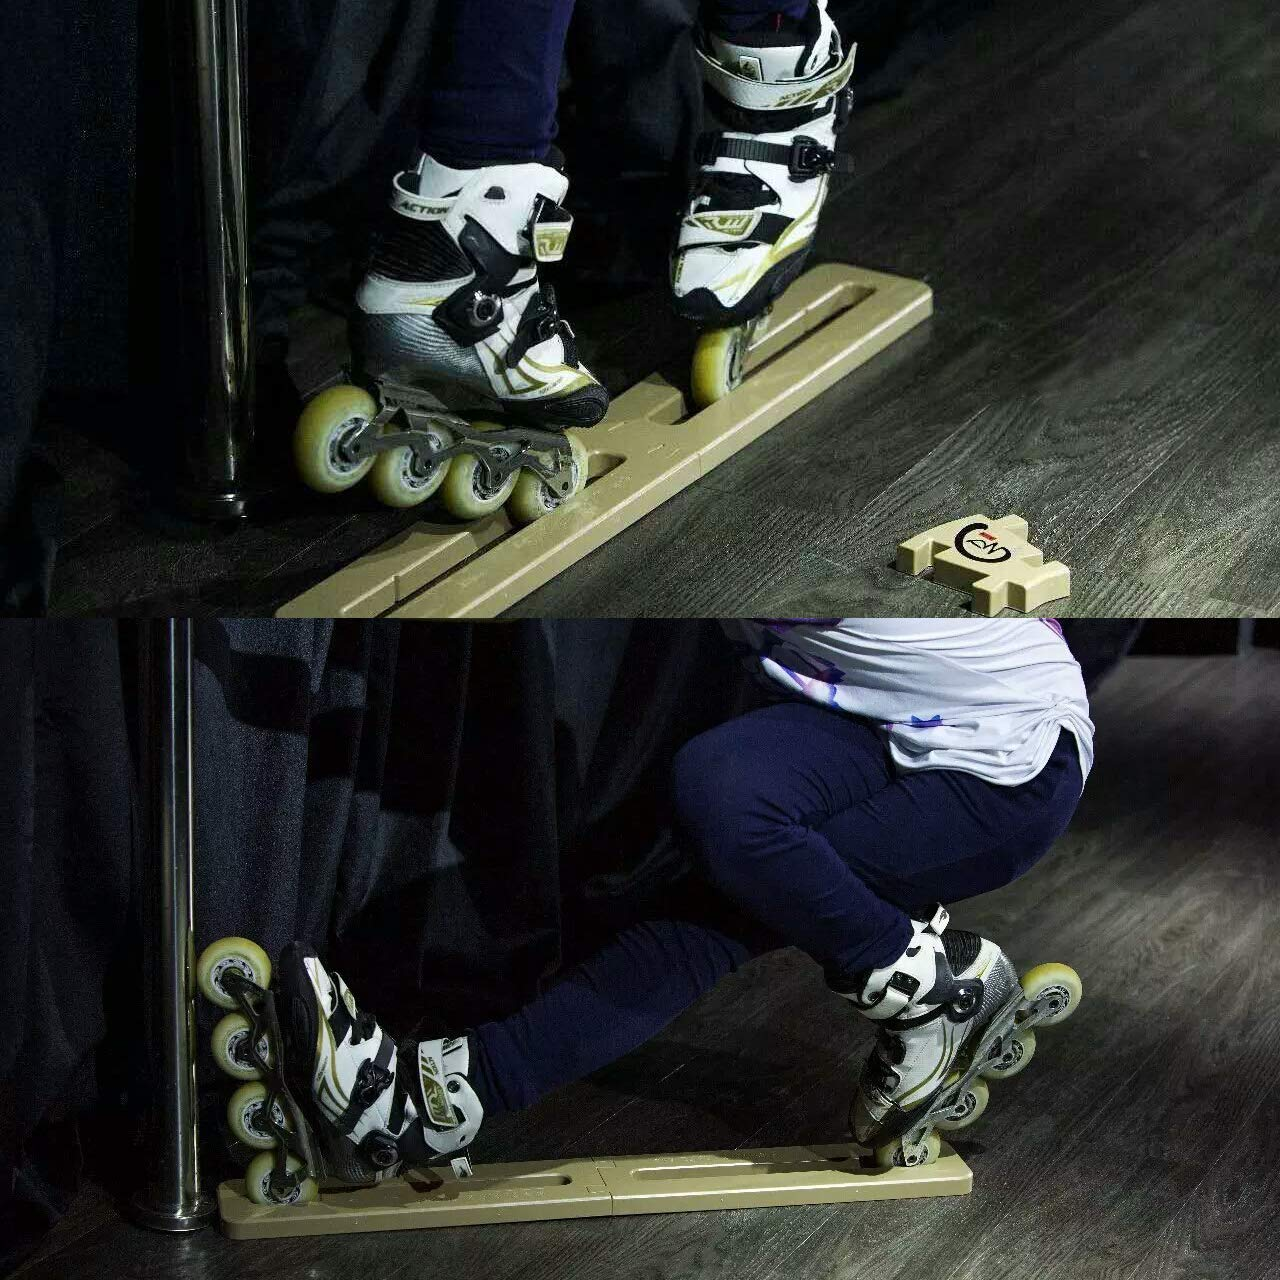 Cupidove Inline Skate Trainer -Stretching Leg Ligament Strengthen Muscle Memory,Help to Master Difficult Skills Quickly by Cupidove (Image #4)